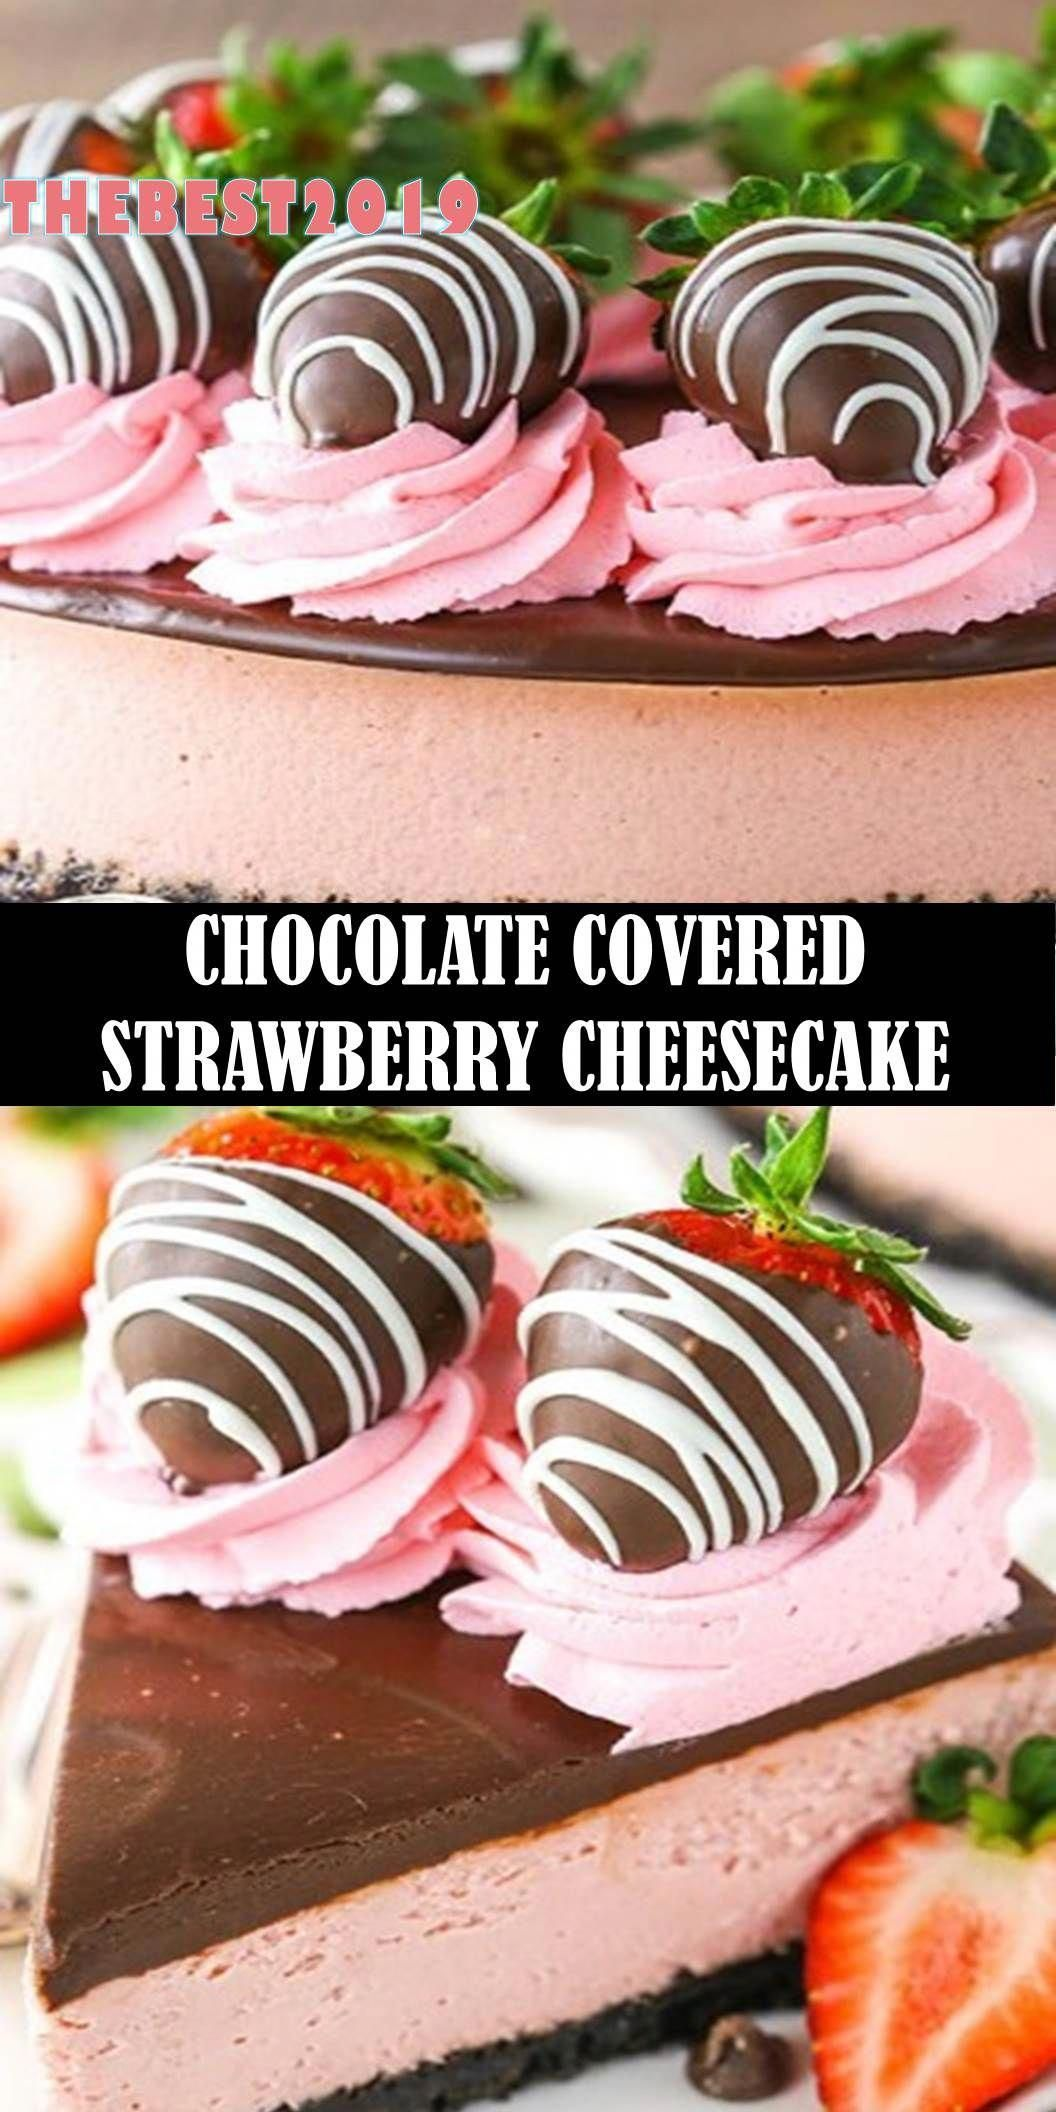 559 Reviews :   The World's most delicious CHOCOLATE COVERED STRAWBERRY CHEESECAKE  This Chocolate Covered Strawberry Cheesecake recipe is made with a strawberry cheesecake filling and chocolate Oreo crust, all covered in chocolate ganache and chocolate covered strawberries!